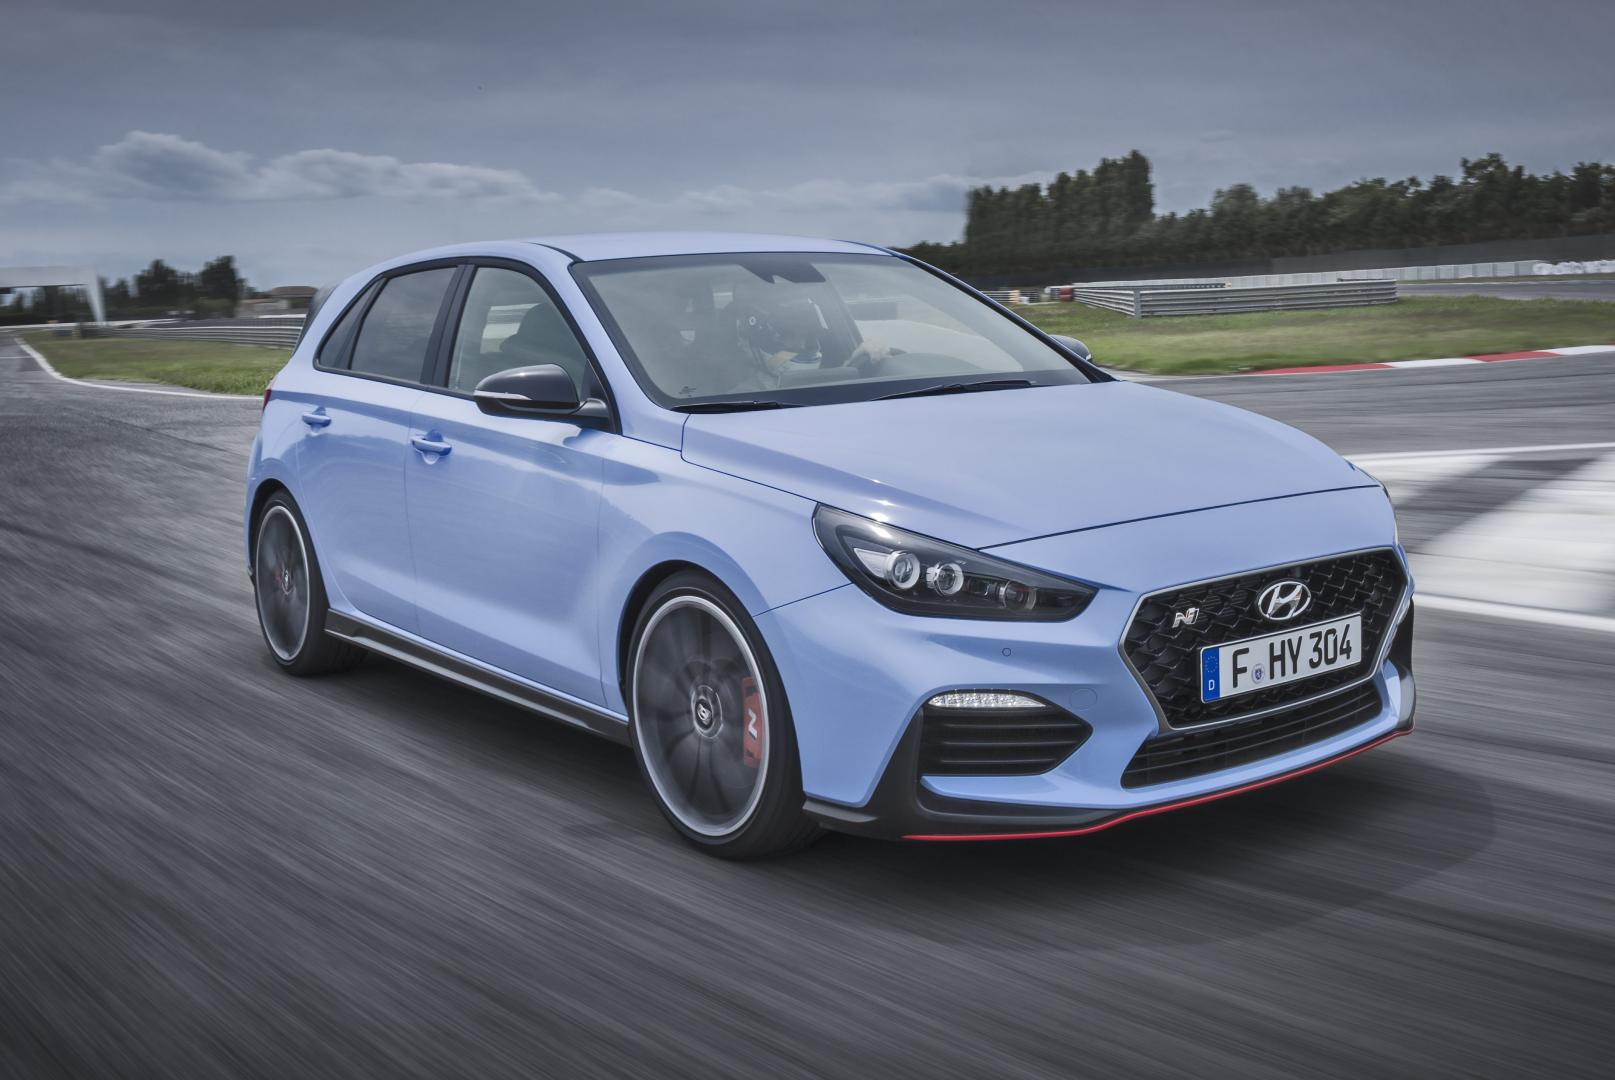 hyundai i30 n n2 performance 2017 test en specificaties. Black Bedroom Furniture Sets. Home Design Ideas